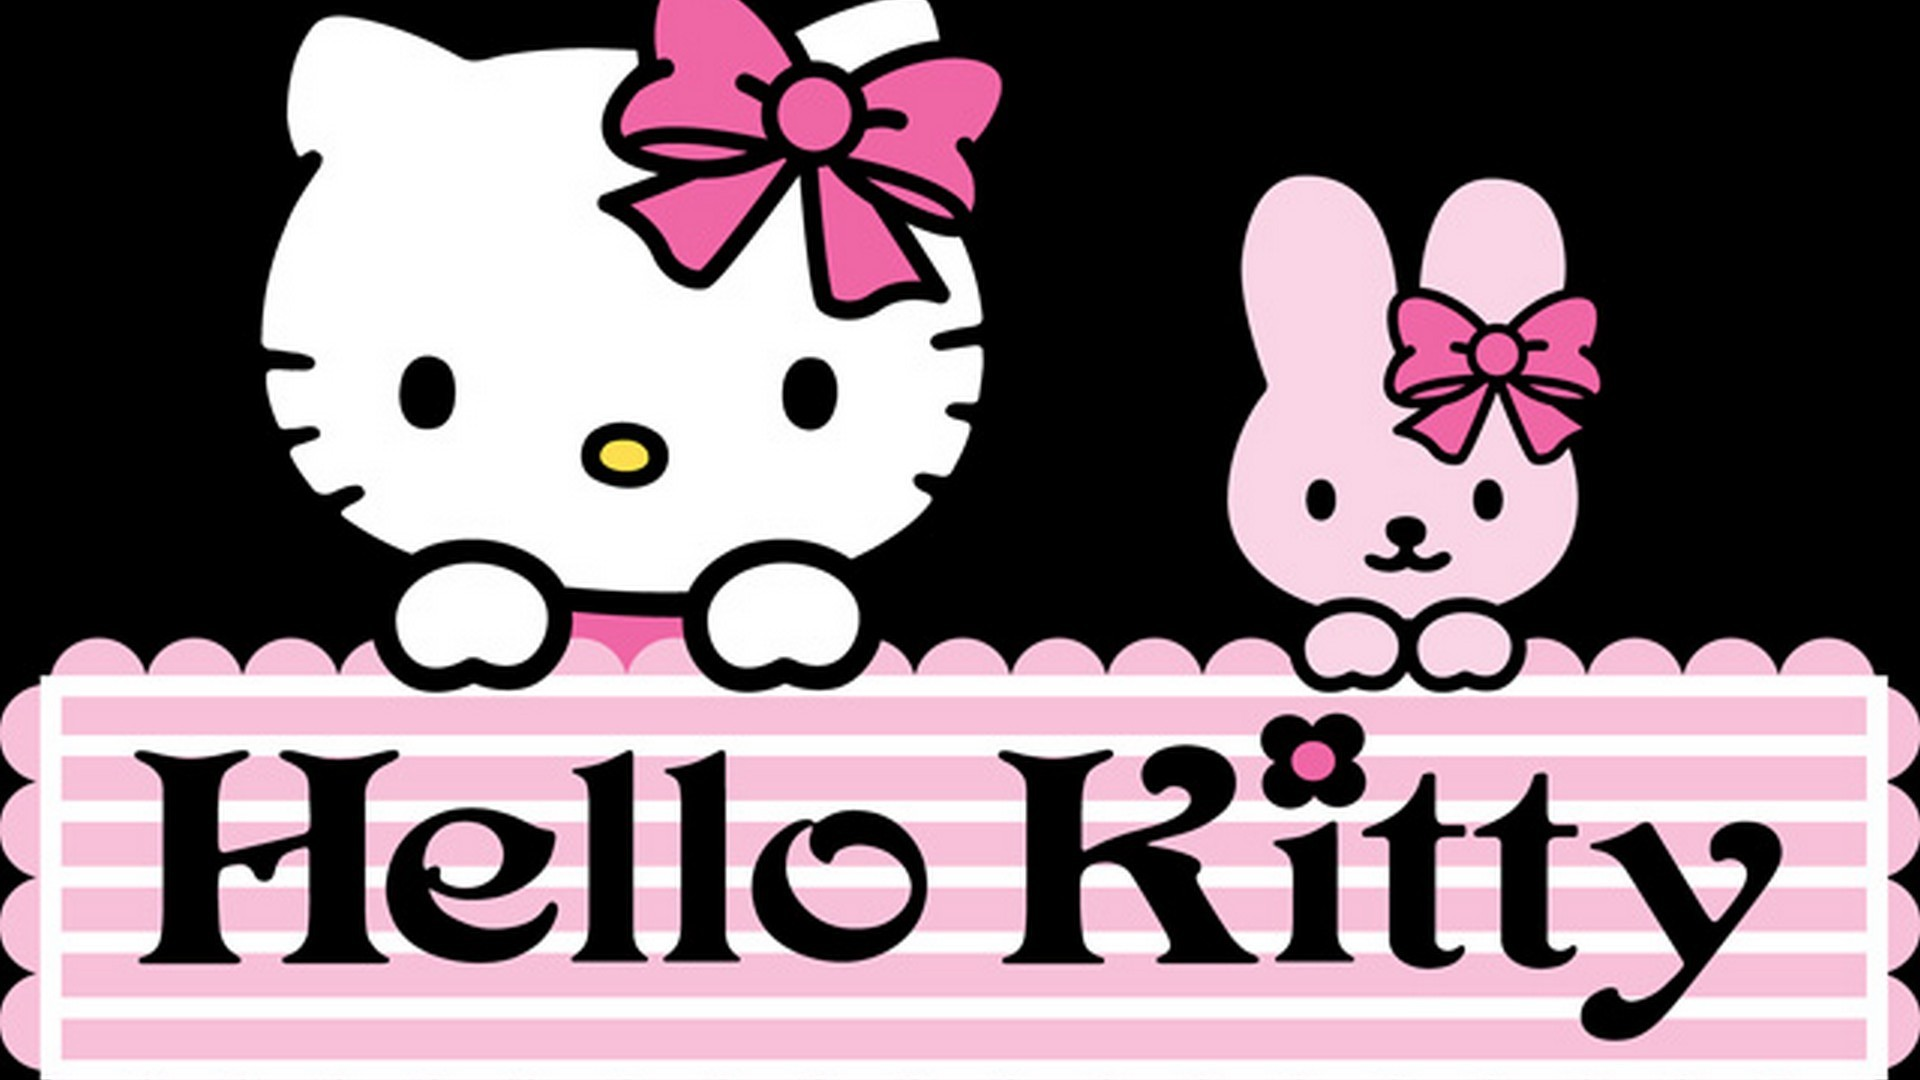 1920x1080 Hello Kitty Pictures Background Wallpaper HD with image resolution   pixel. You can make this